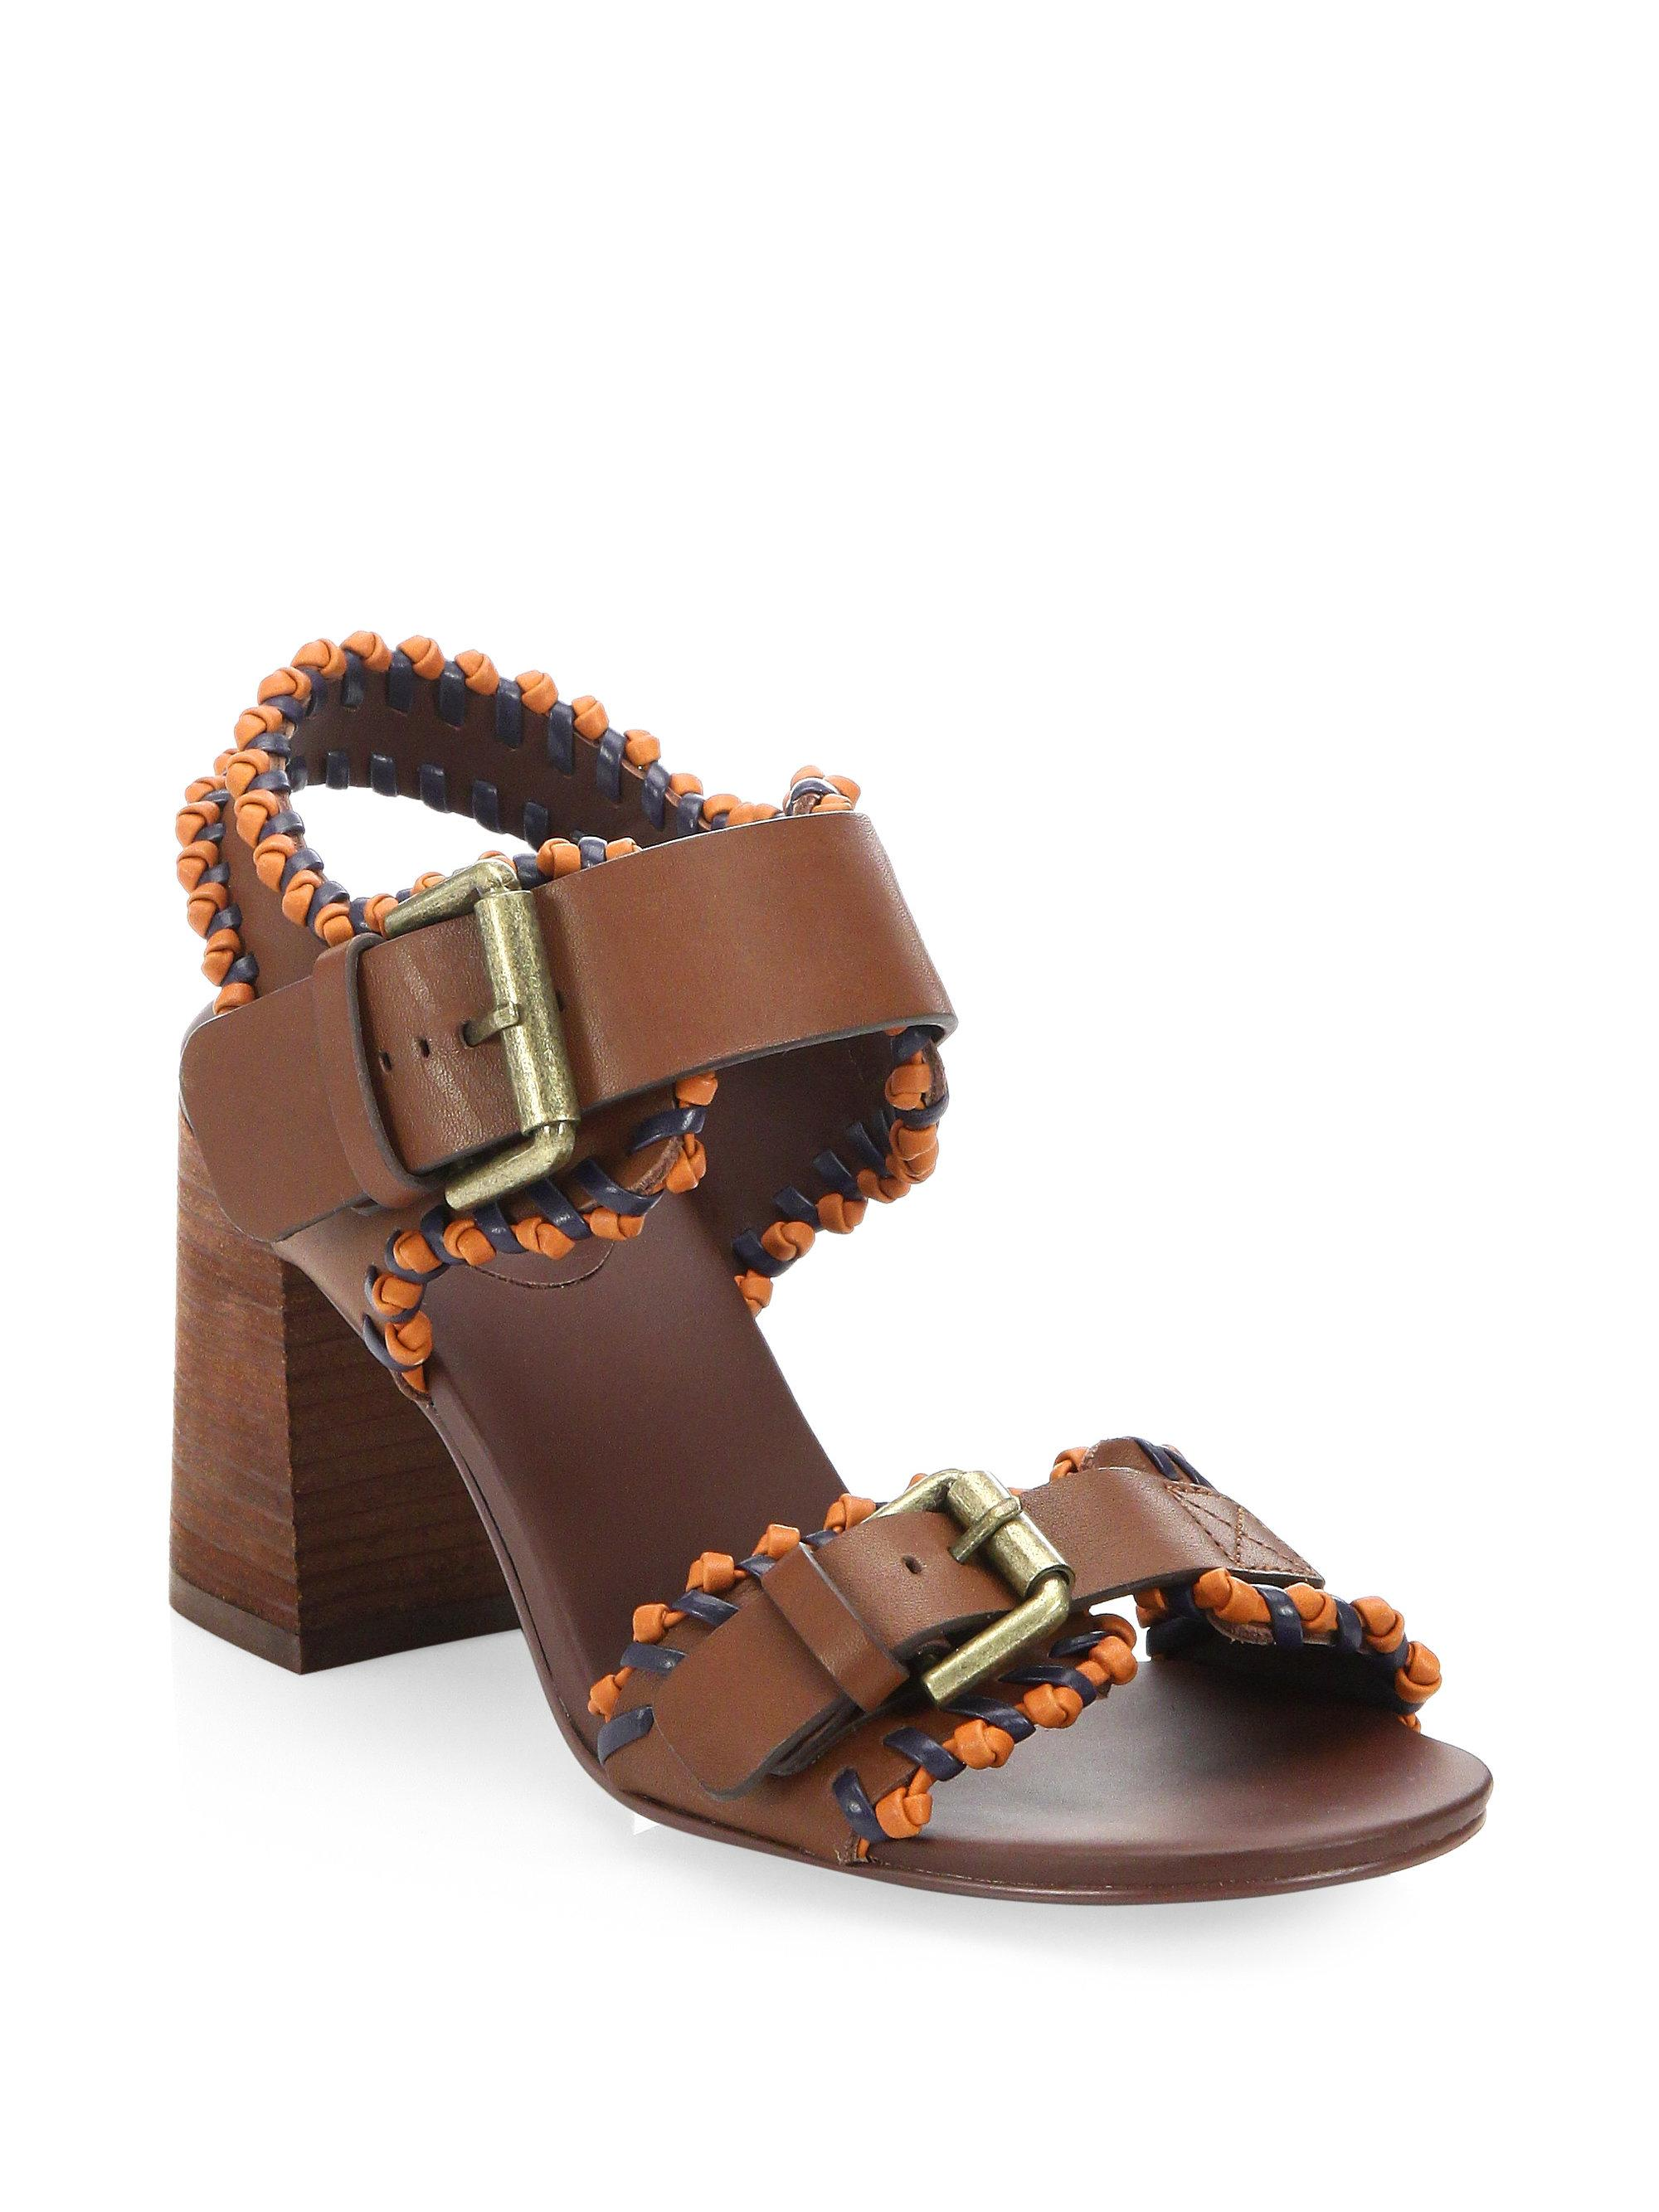 5d57694c387 Lyst - See By Chloé Romy City Leather Whipstitch Sandals in Brown